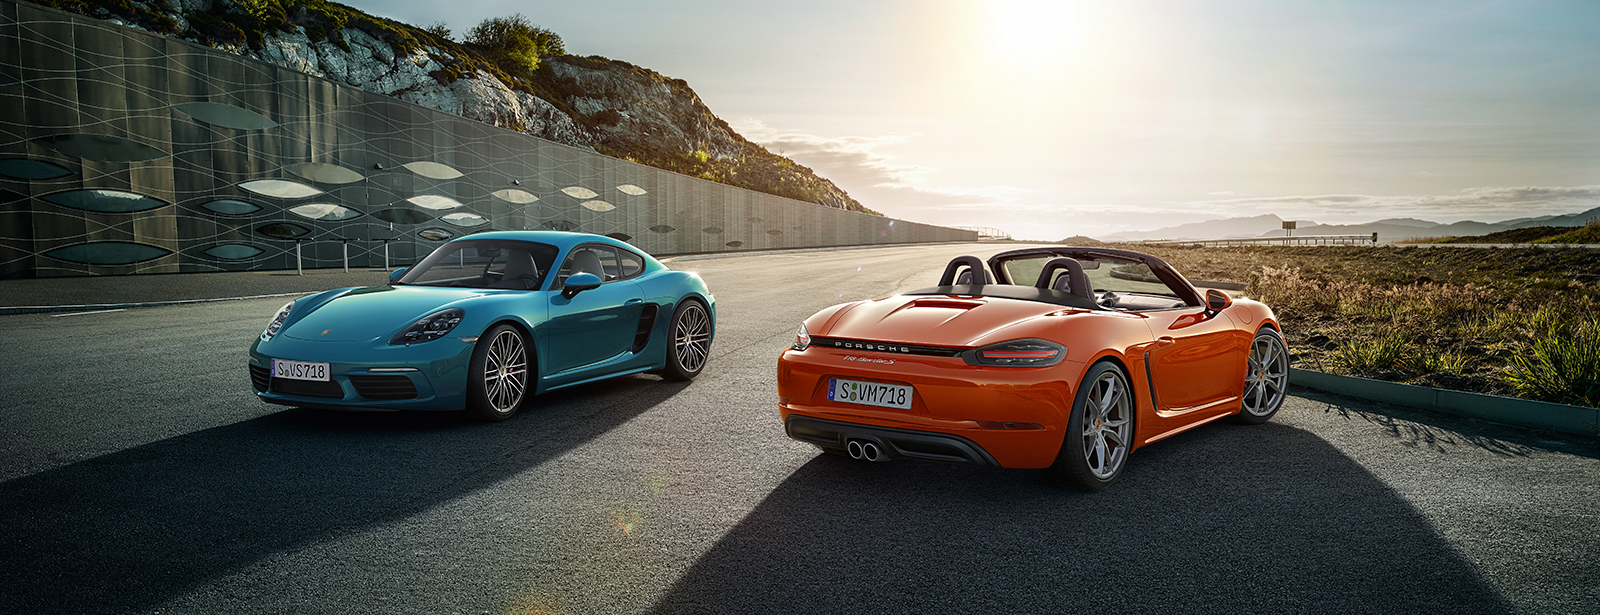 Boxster and Cayman Service